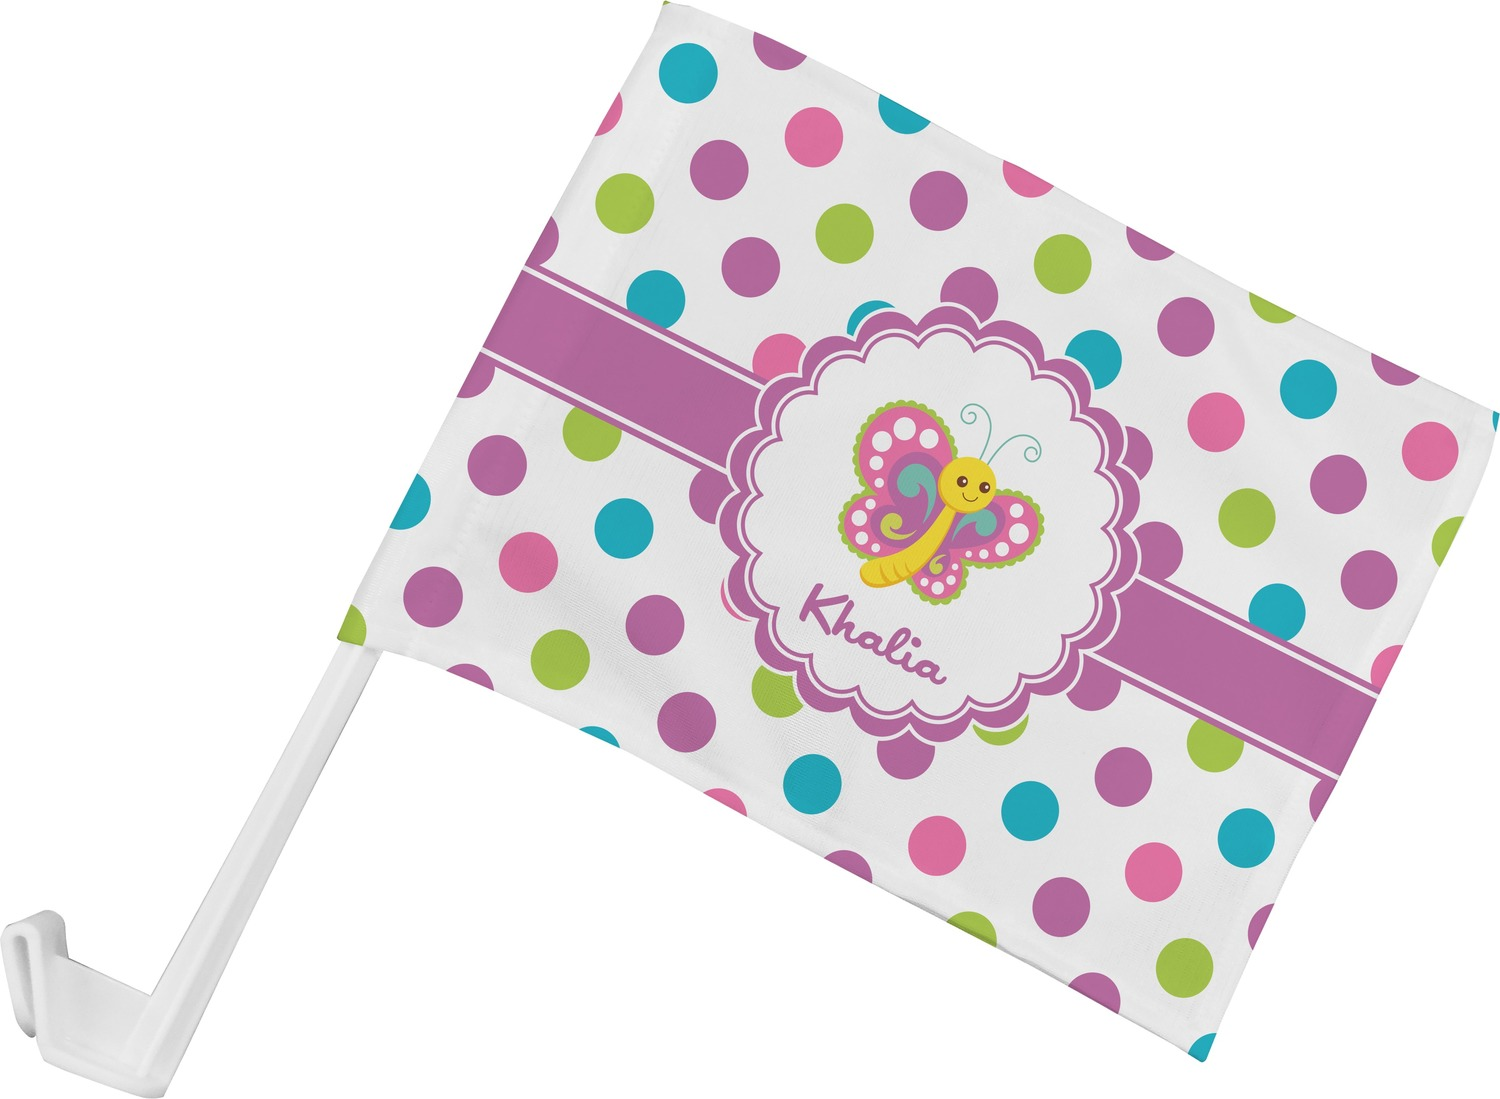 Design car flags - Polka Dot Butterfly Car Flag Personalized